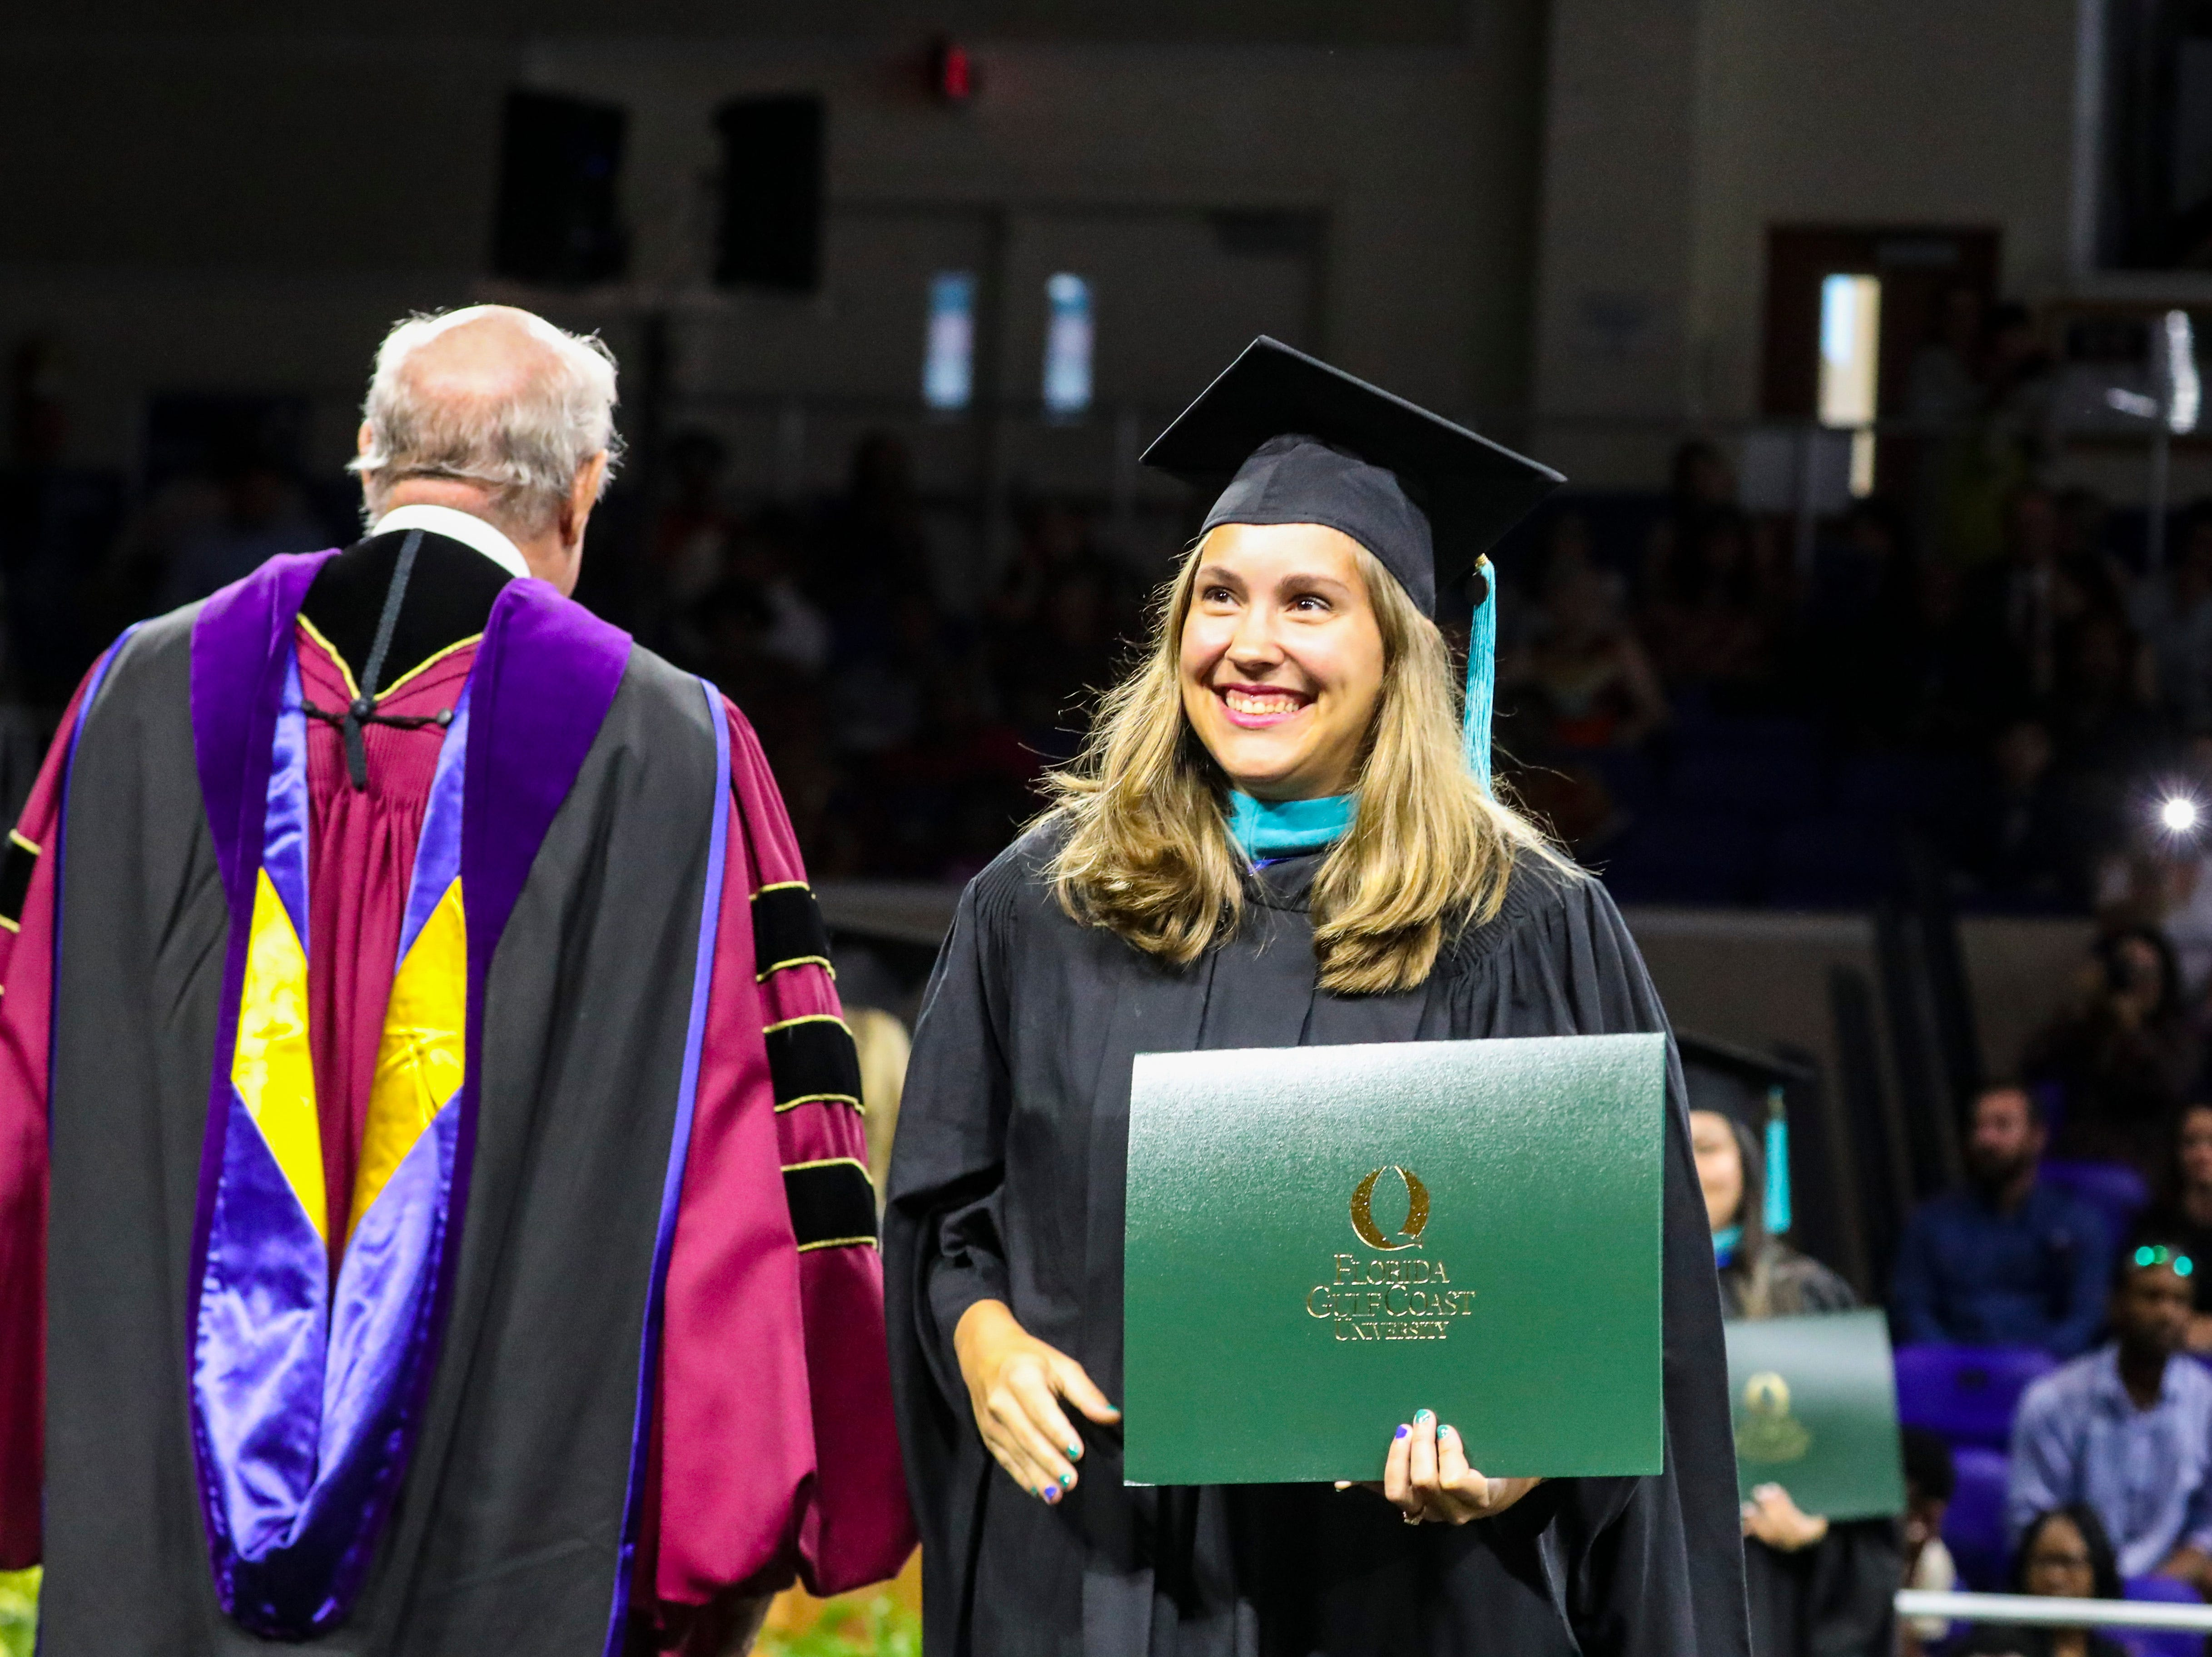 FGCU celebrates their winter graduates.